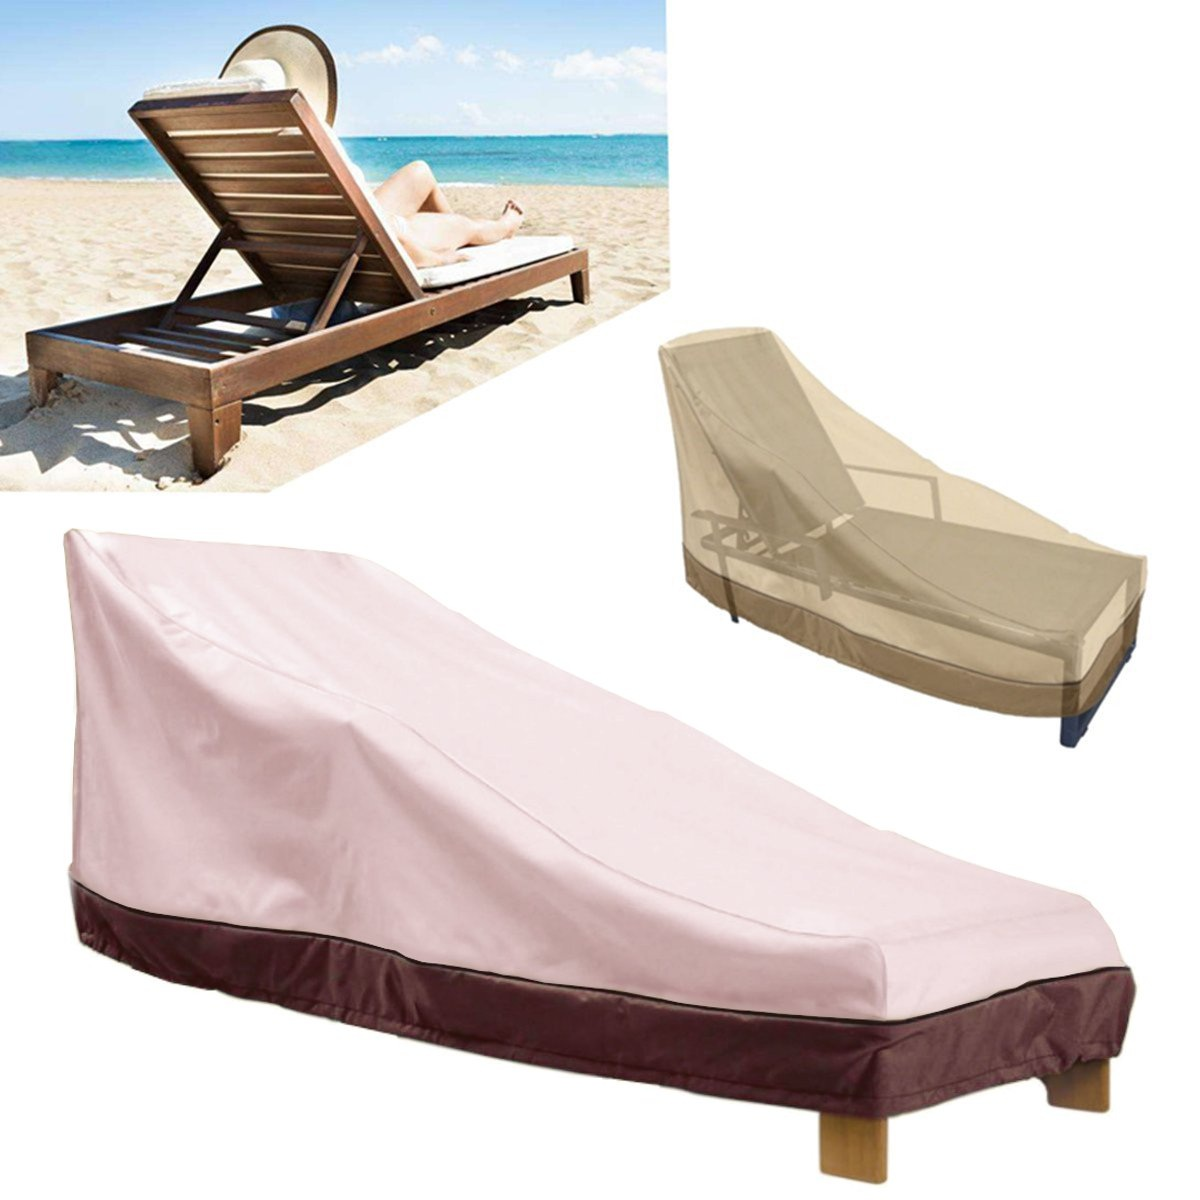 Moaere Waterproof Outdoor Protection Cage Patio Chaise Lounge Recliner Chair Furniture Cover